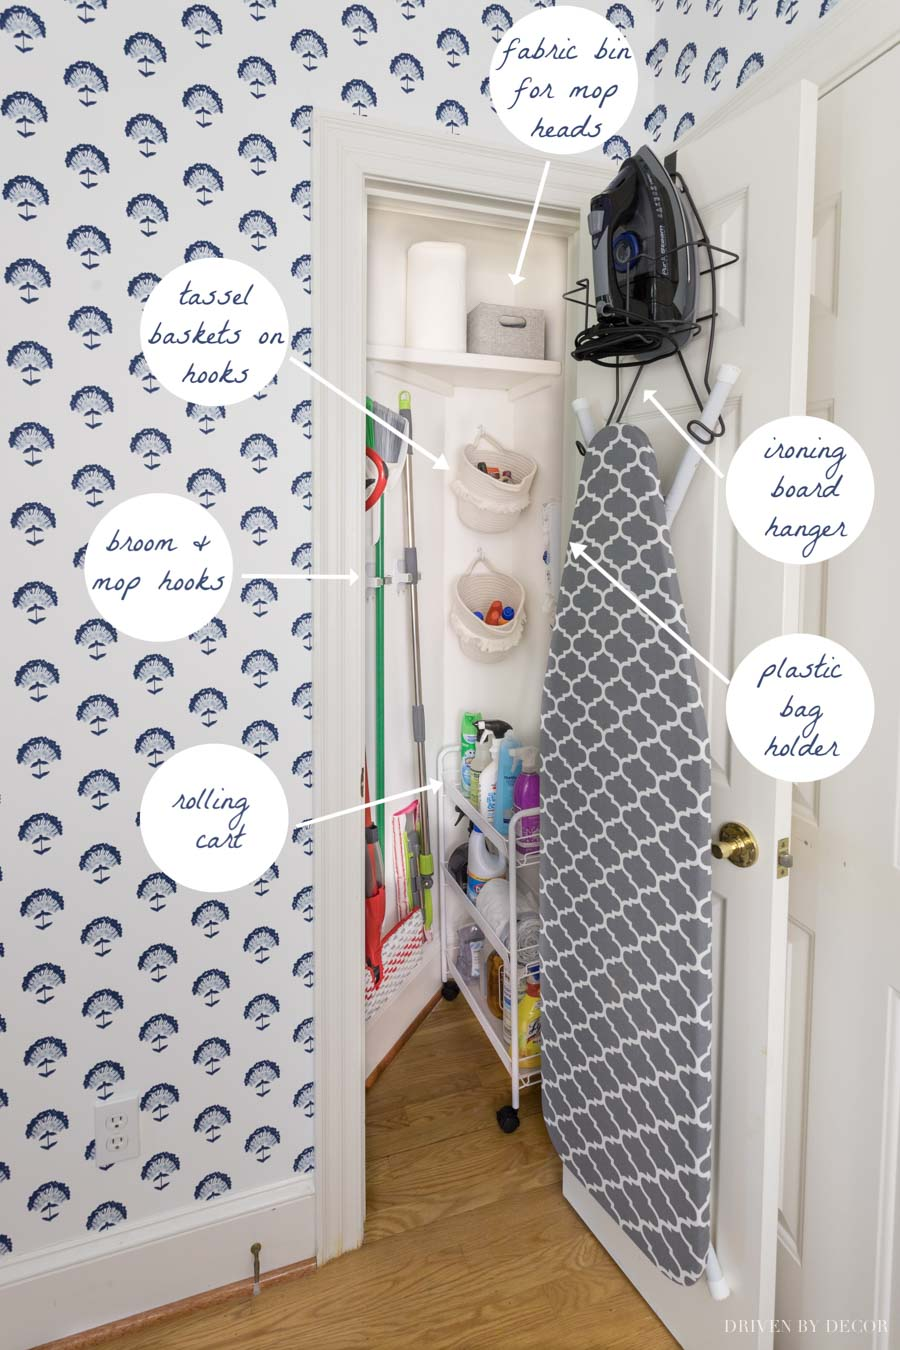 Our organized utility closet in our laundry room!